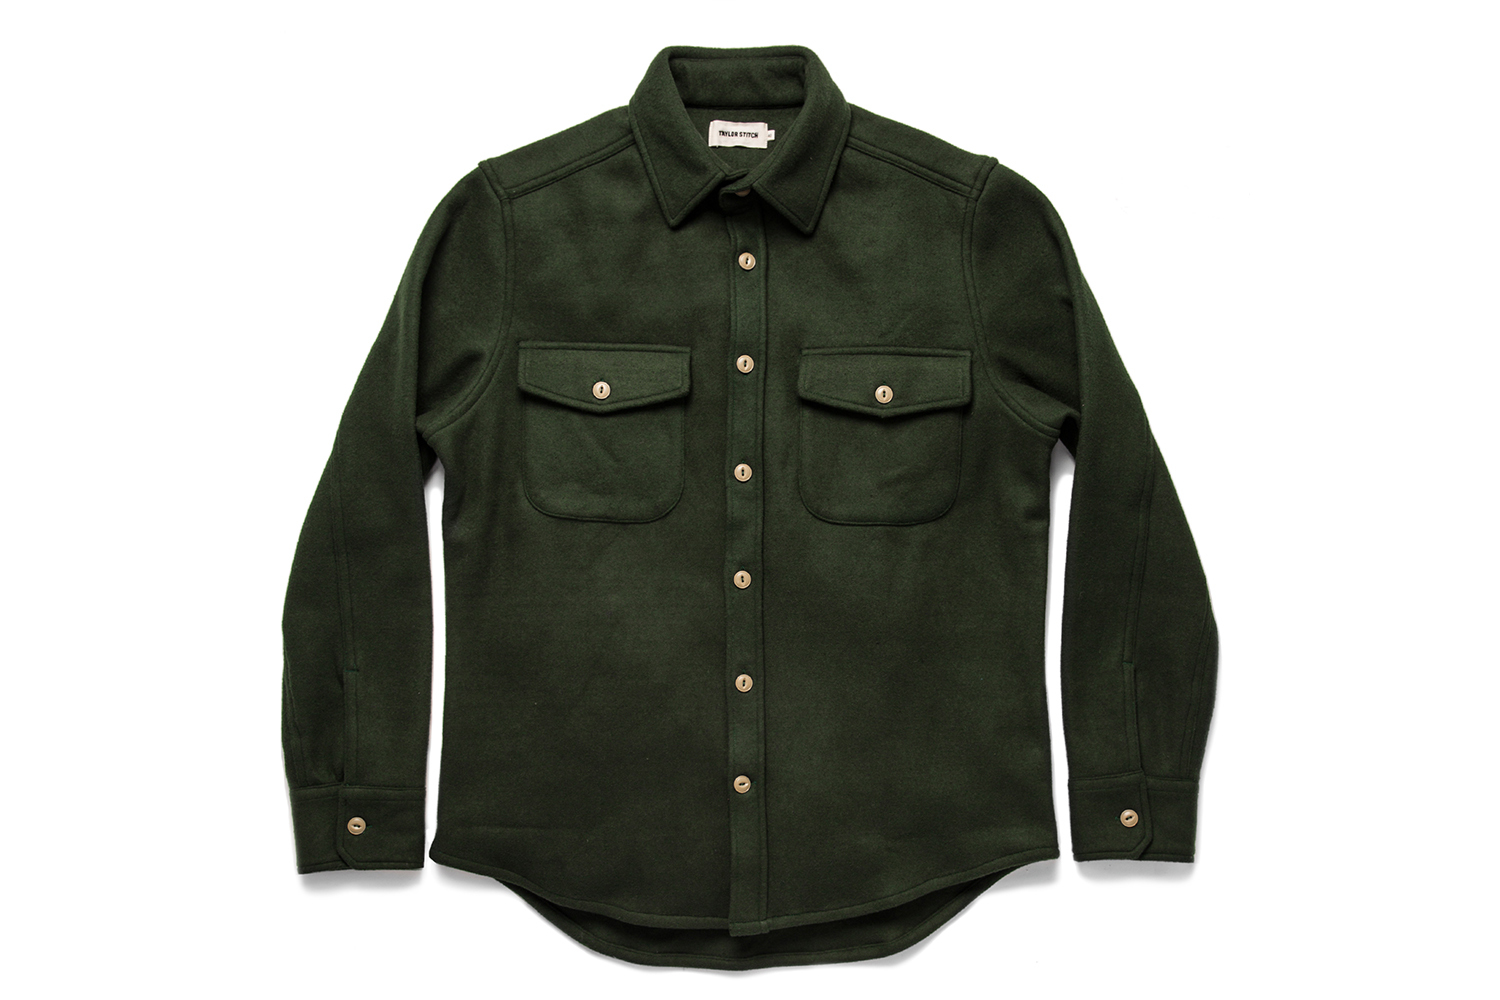 Taylor Stitch Maritime Shirt Jacket